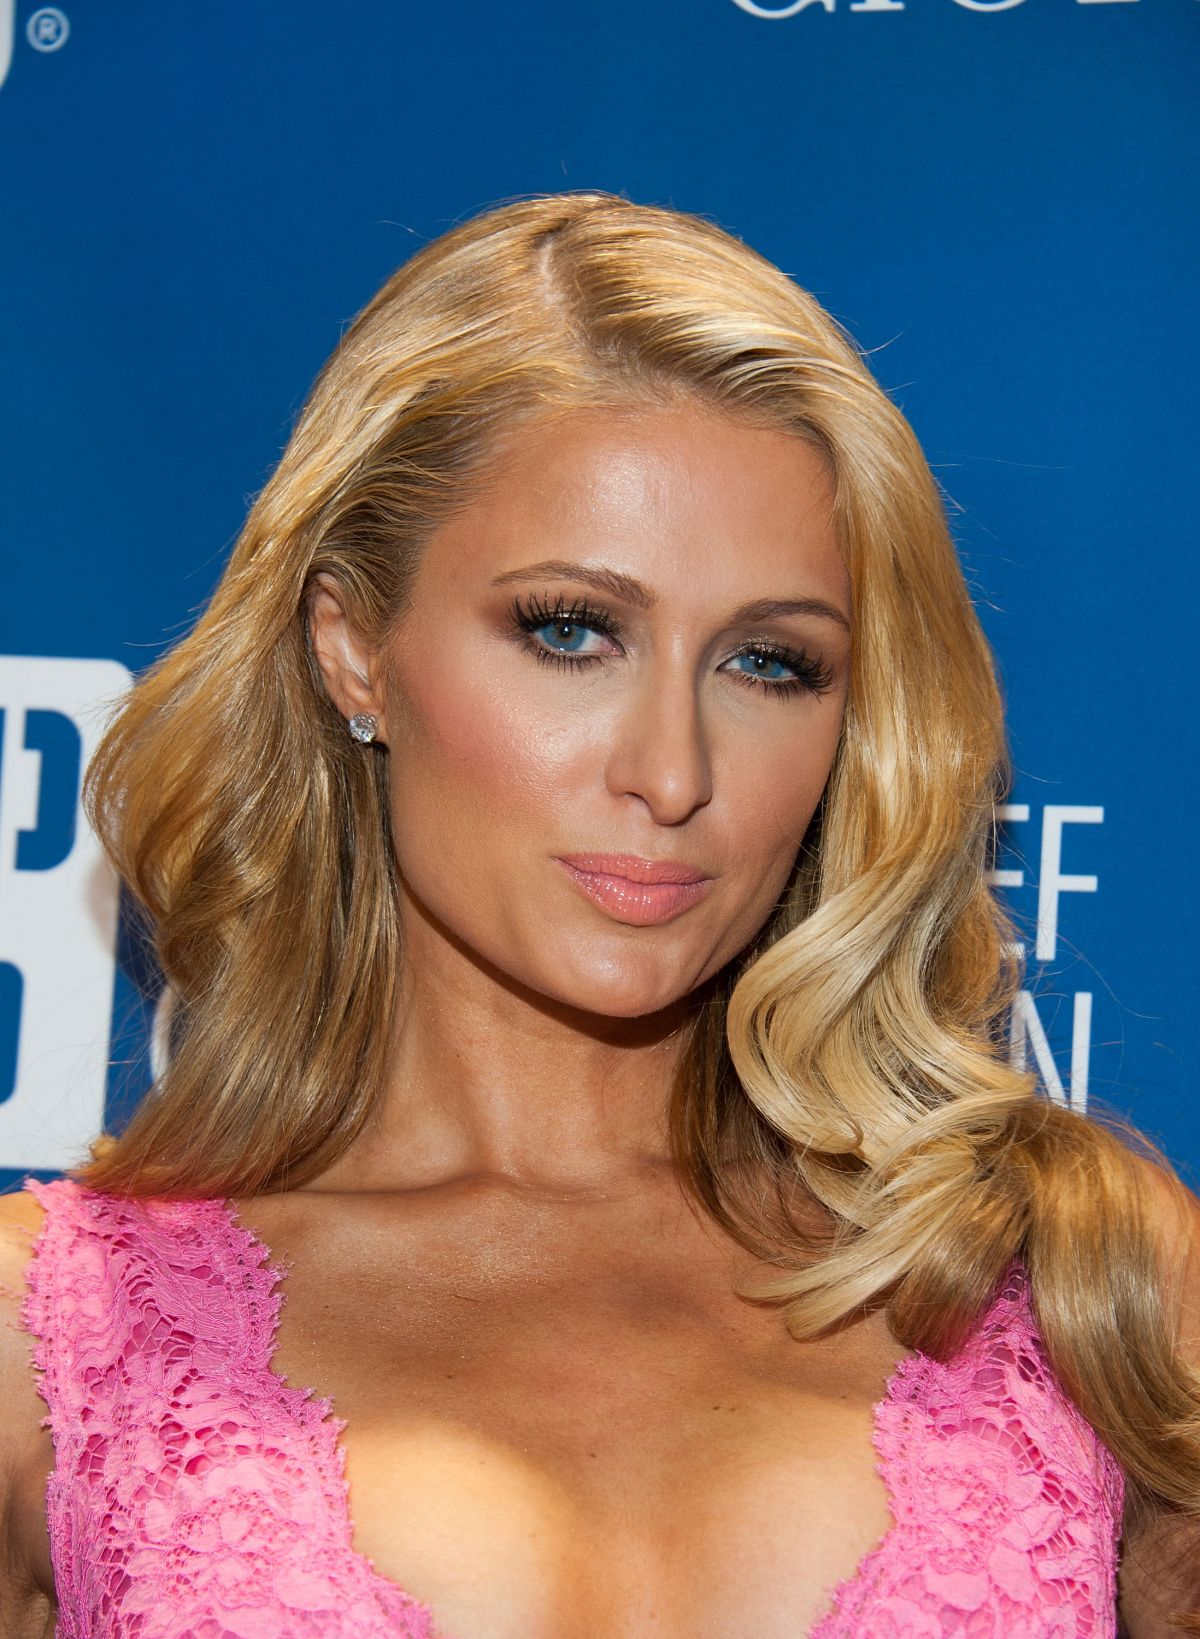 PARIS HILTON at 3rd Annual Paris Hilton